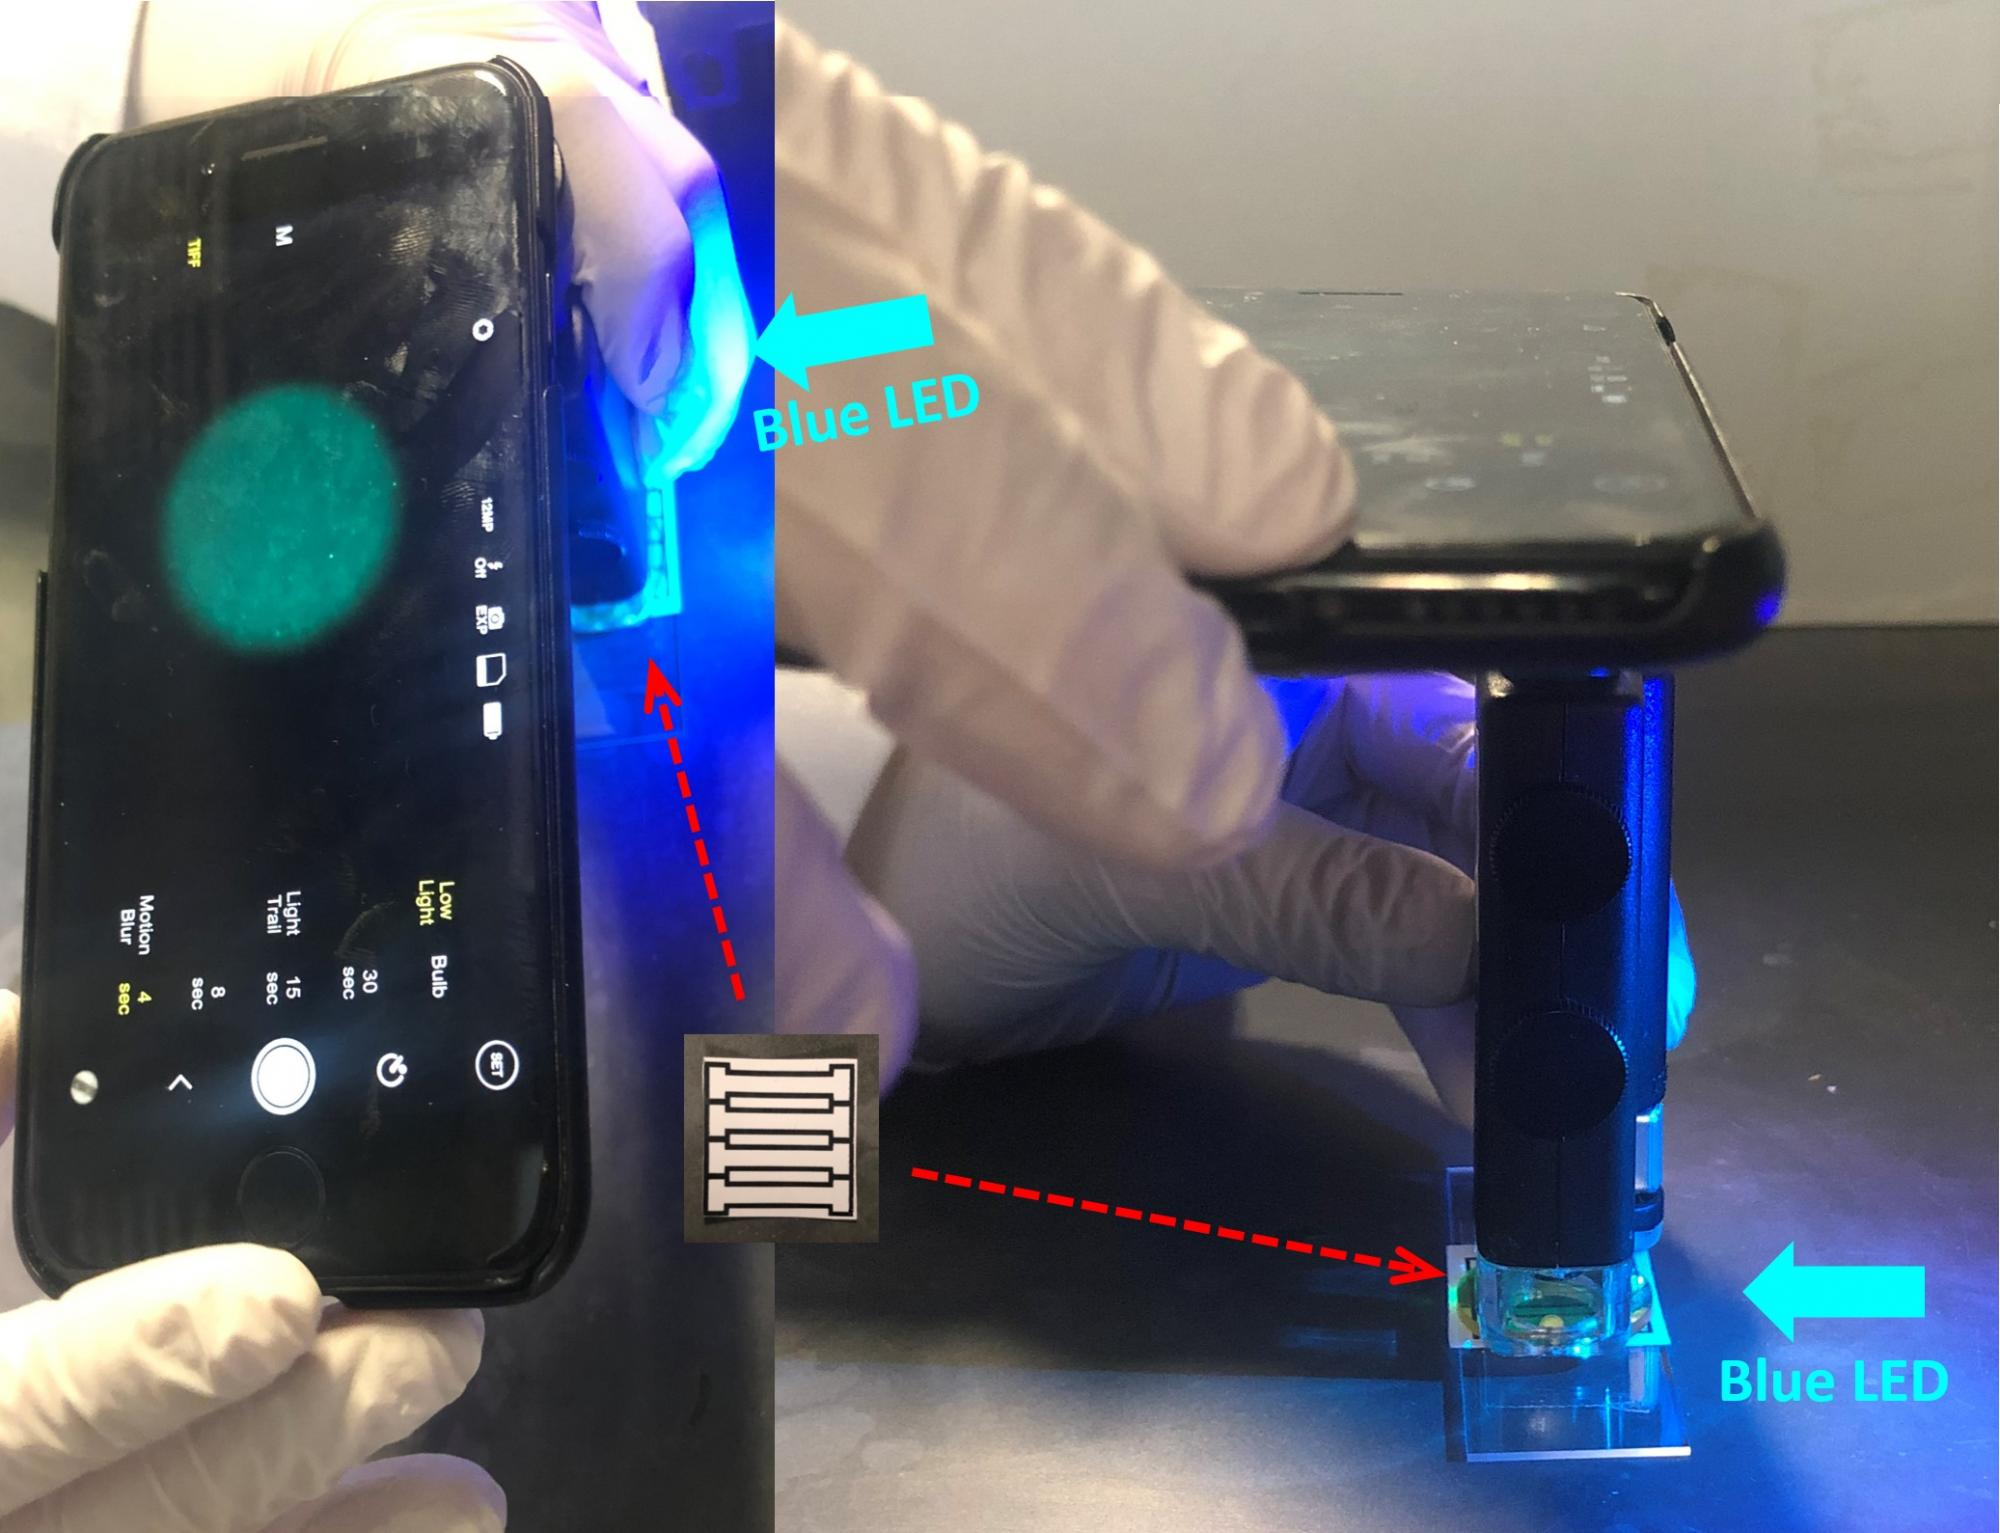 """""""You don't have to be a scientist or an engineer to run the device,"""" Yoon said. """"Analysis will be done automatically by the smartphone app, so all you have to worry about is loading a sample of water onto the chip."""""""